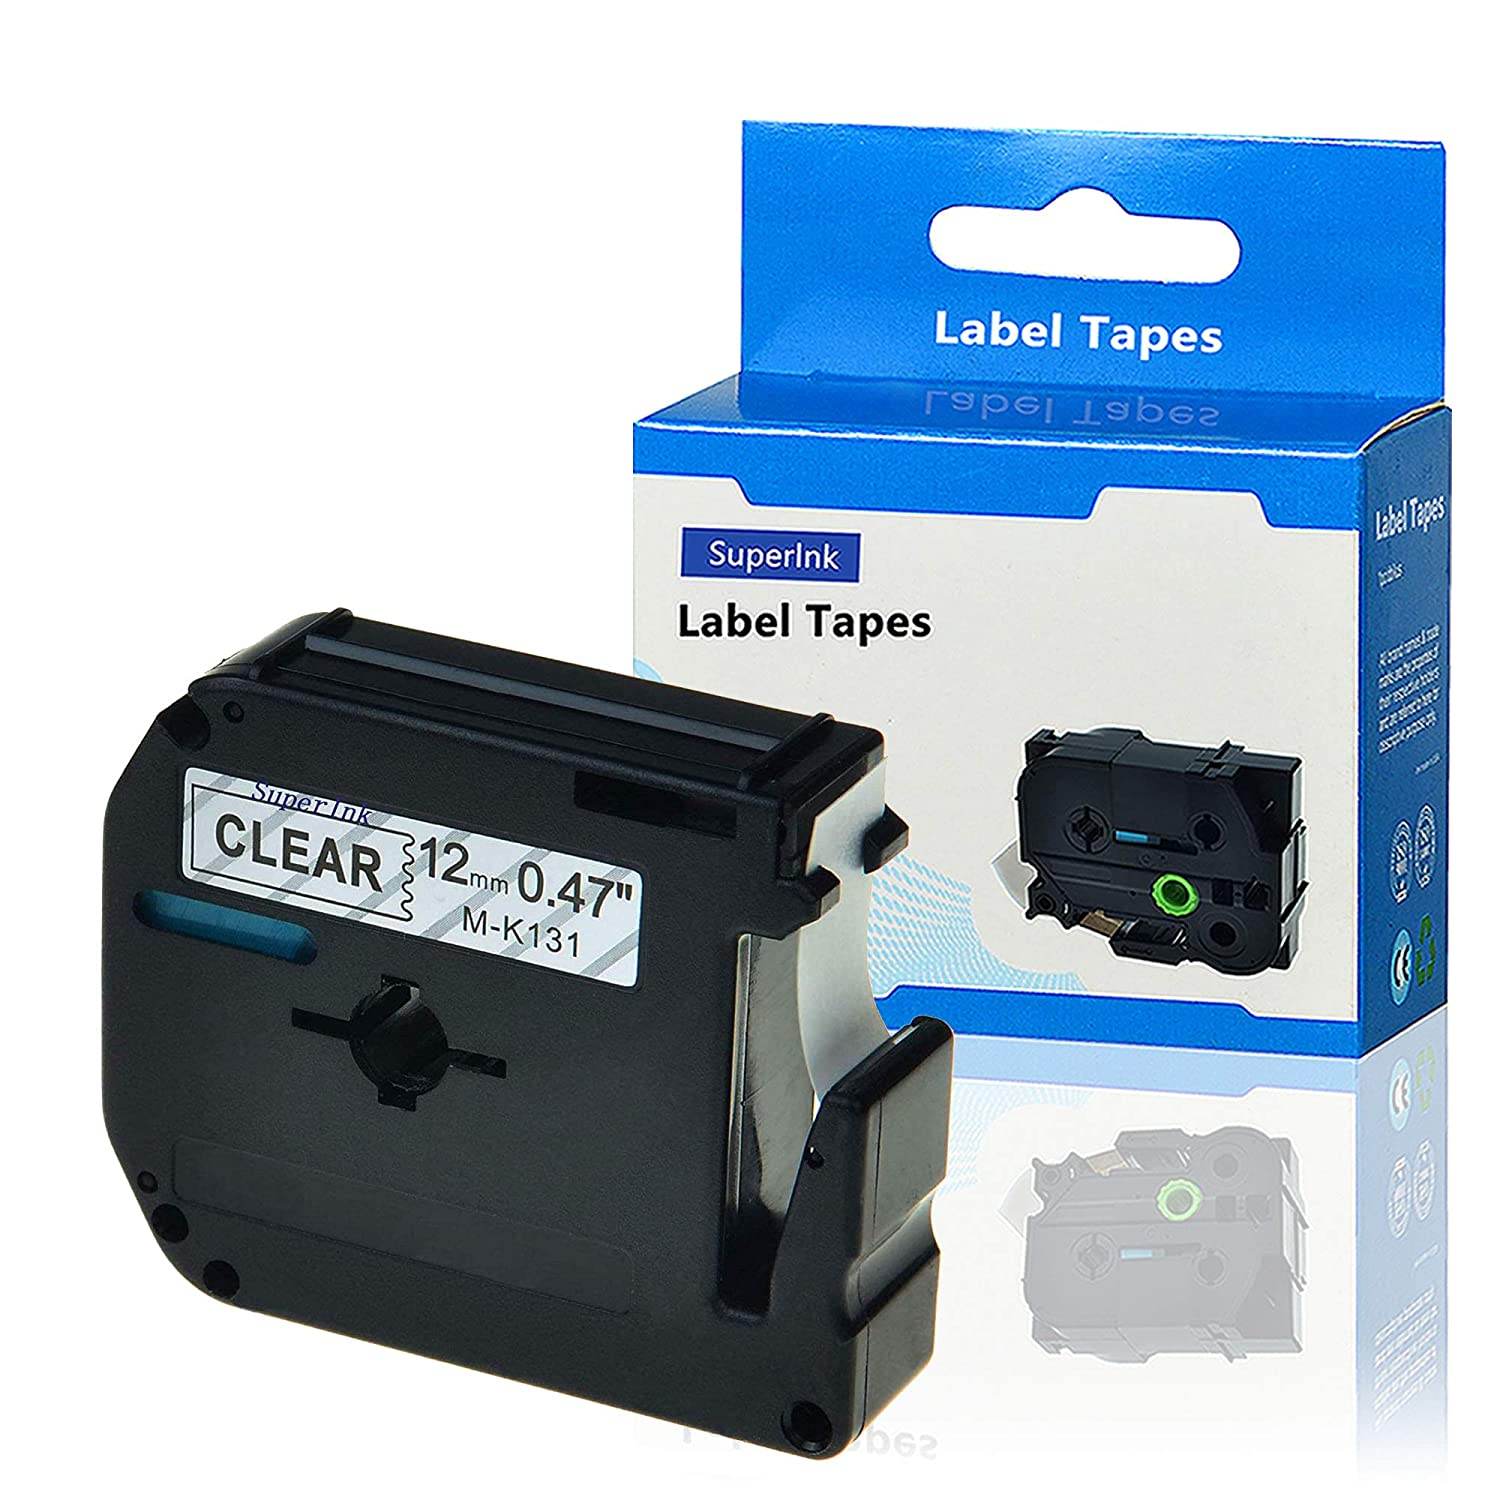 SuperInk 1 Pack Black on Clear Label Tape Compatible for Brother MK131  M-K131 M131 PT-100 PT-45 PT-55 PT-65 PT-70 PT-80 PT-85 PT-90 Thermal  P-Touch